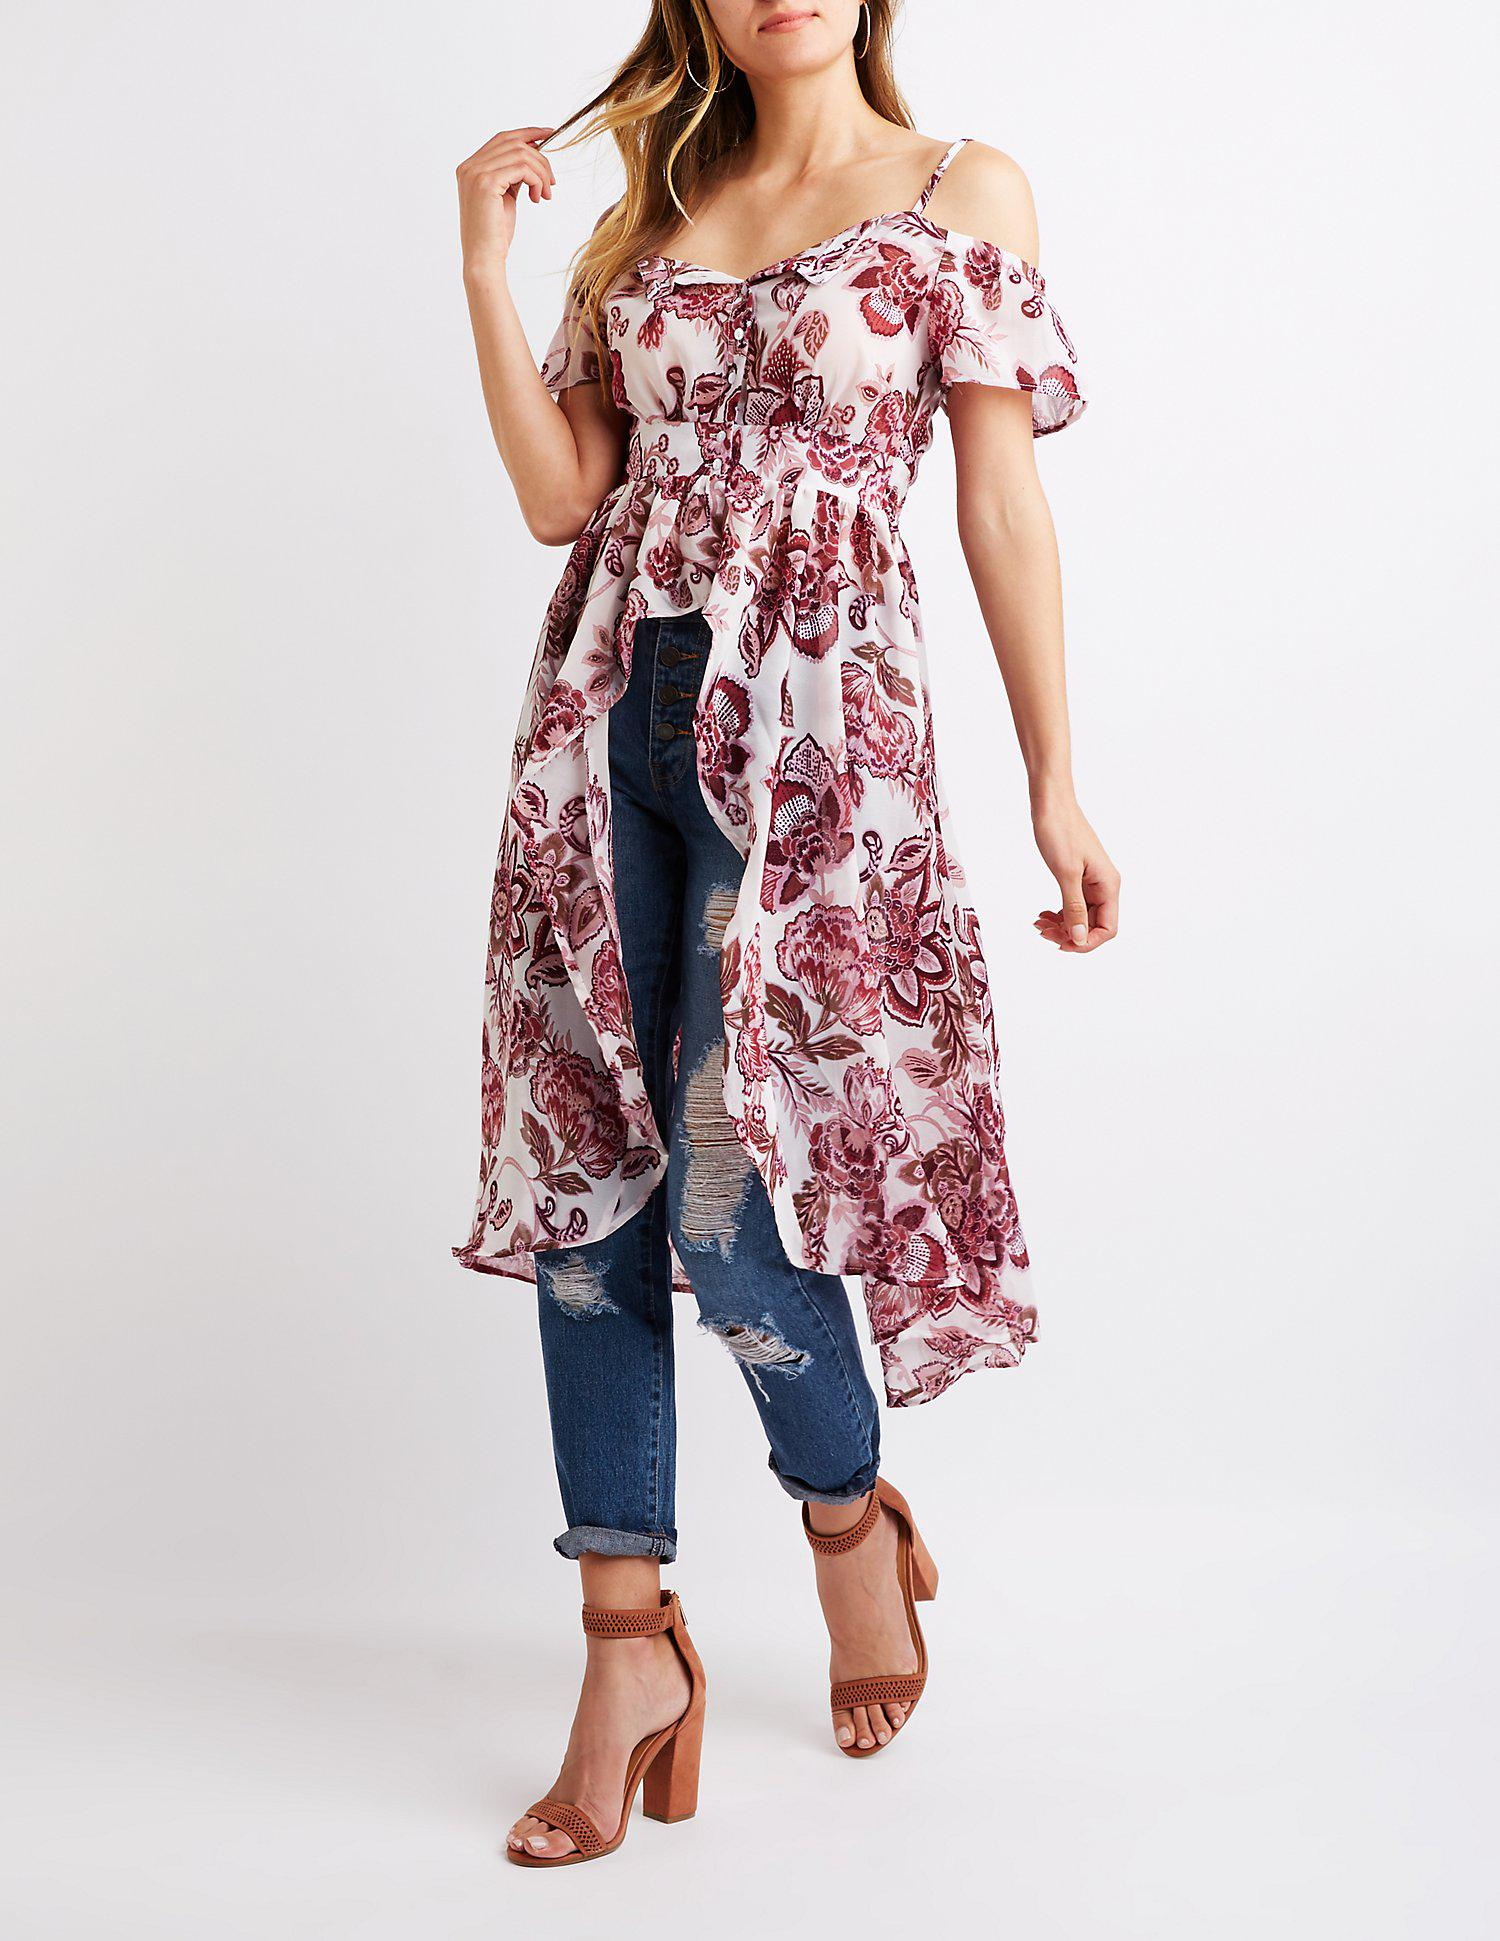 3b7e1e93a5ca4 Lyst - Charlotte Russe Floral High-low Cold Shoulder Top in Red